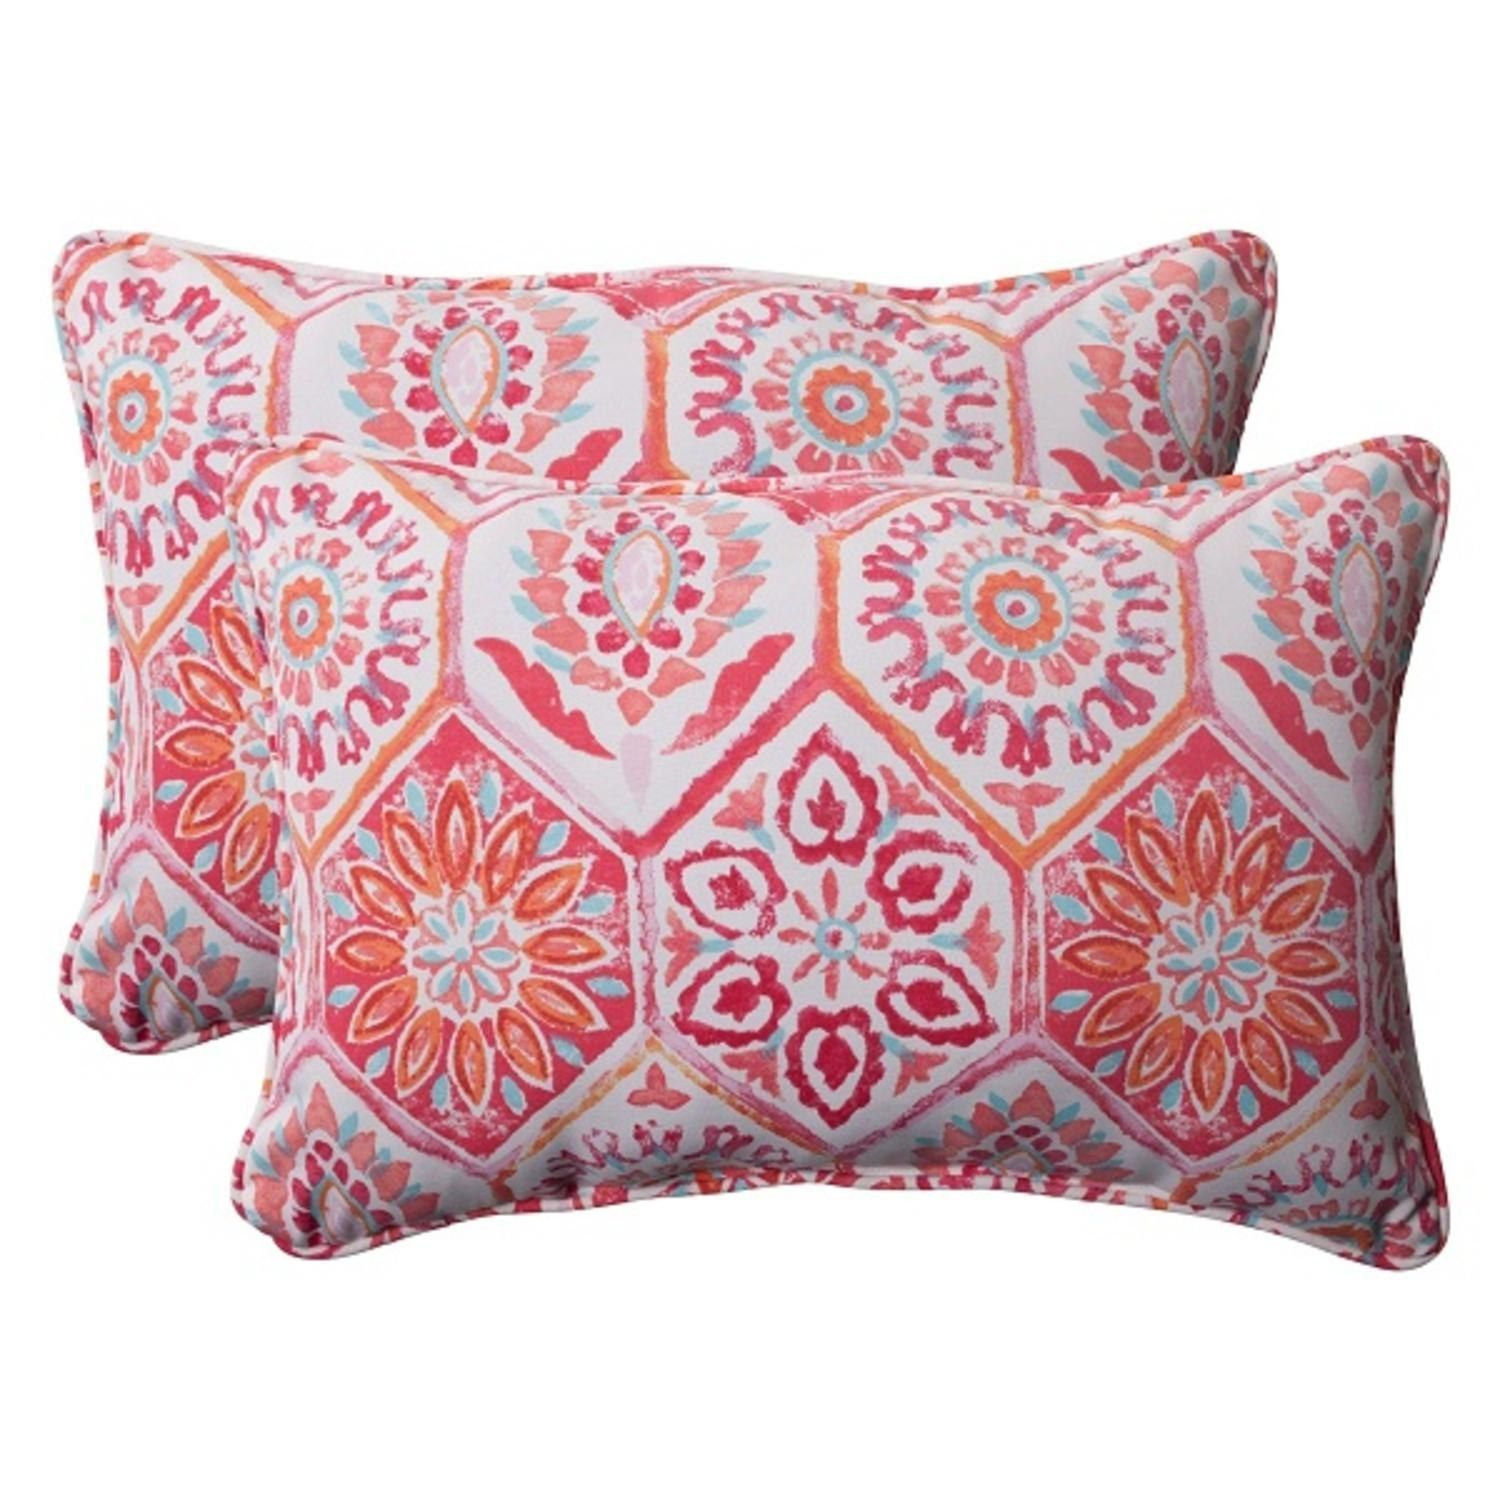 Set of 2 Pink Pyschedelic Outdoor Patio Corded Rectangular Throw